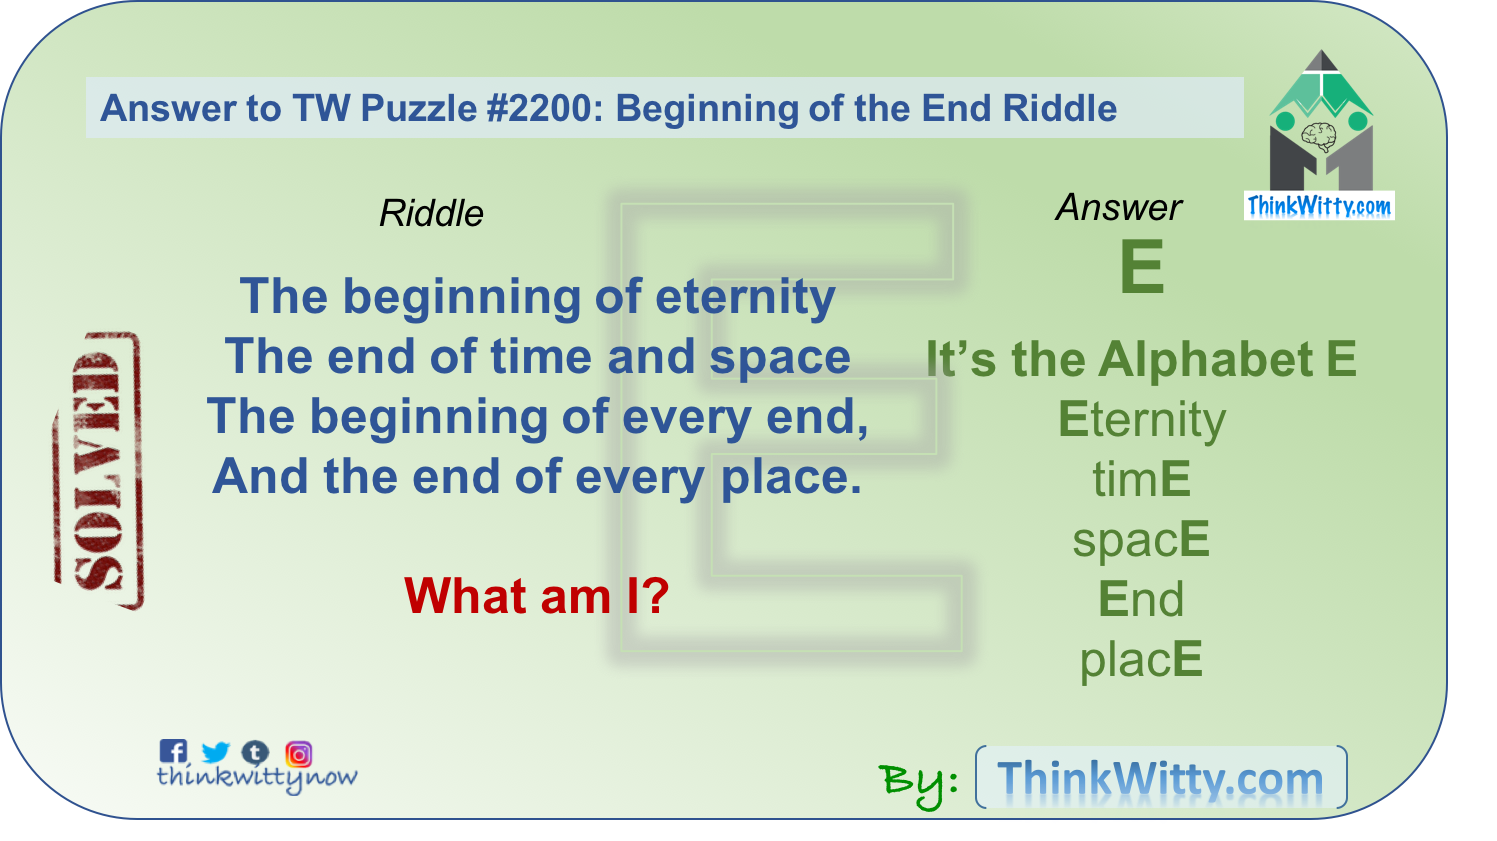 Answer to the Beginning of the End Riddle - Think Witty